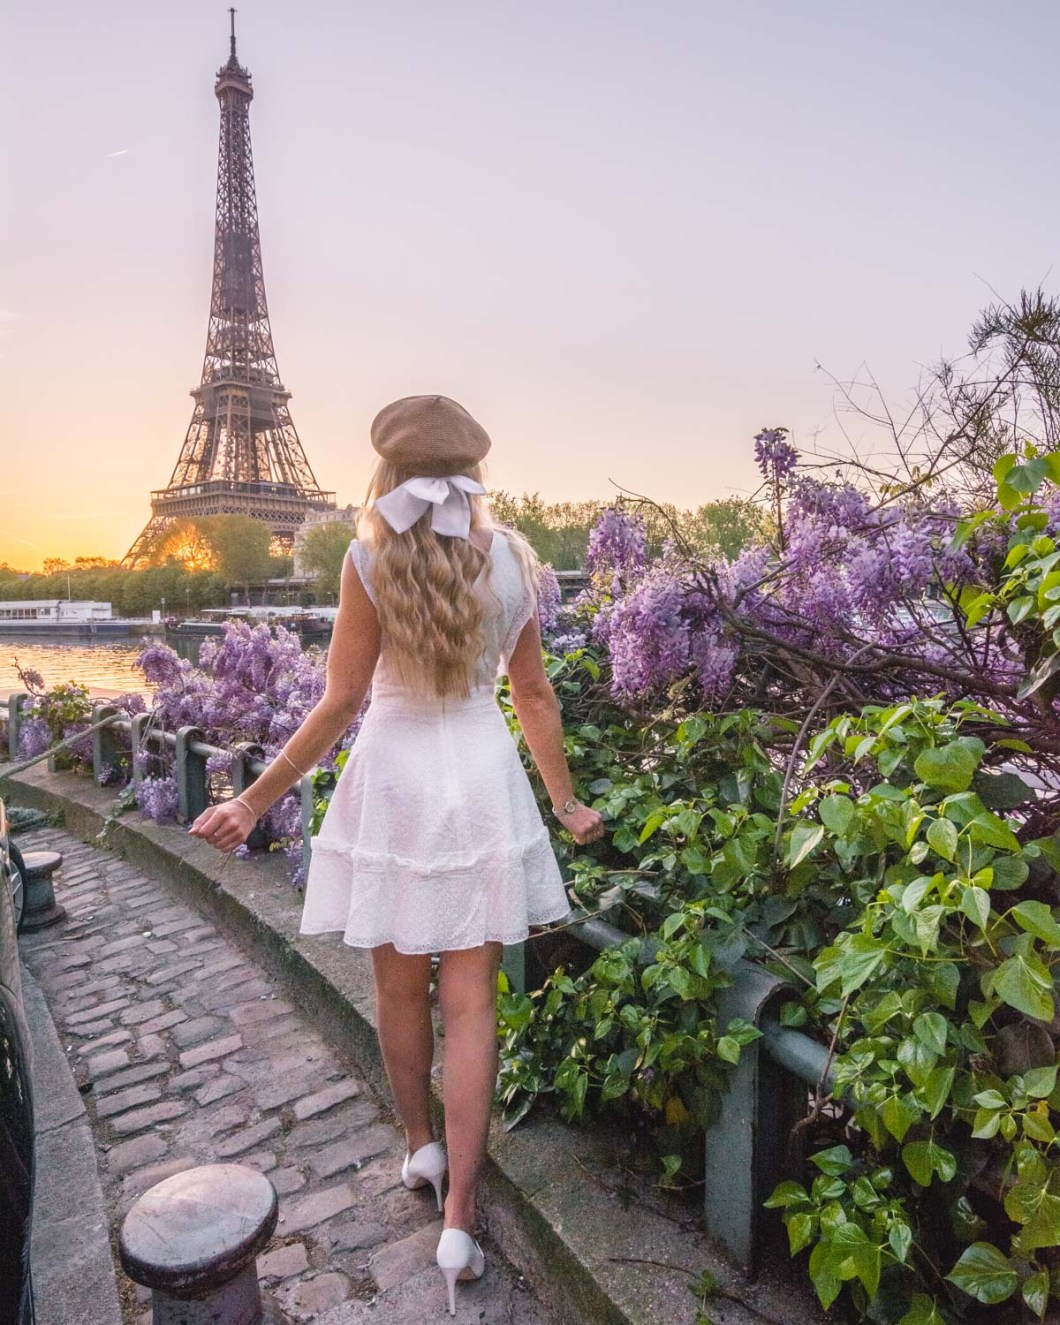 Wisteria in bloom in Port Debilly with the Eiffel Tower - Paris